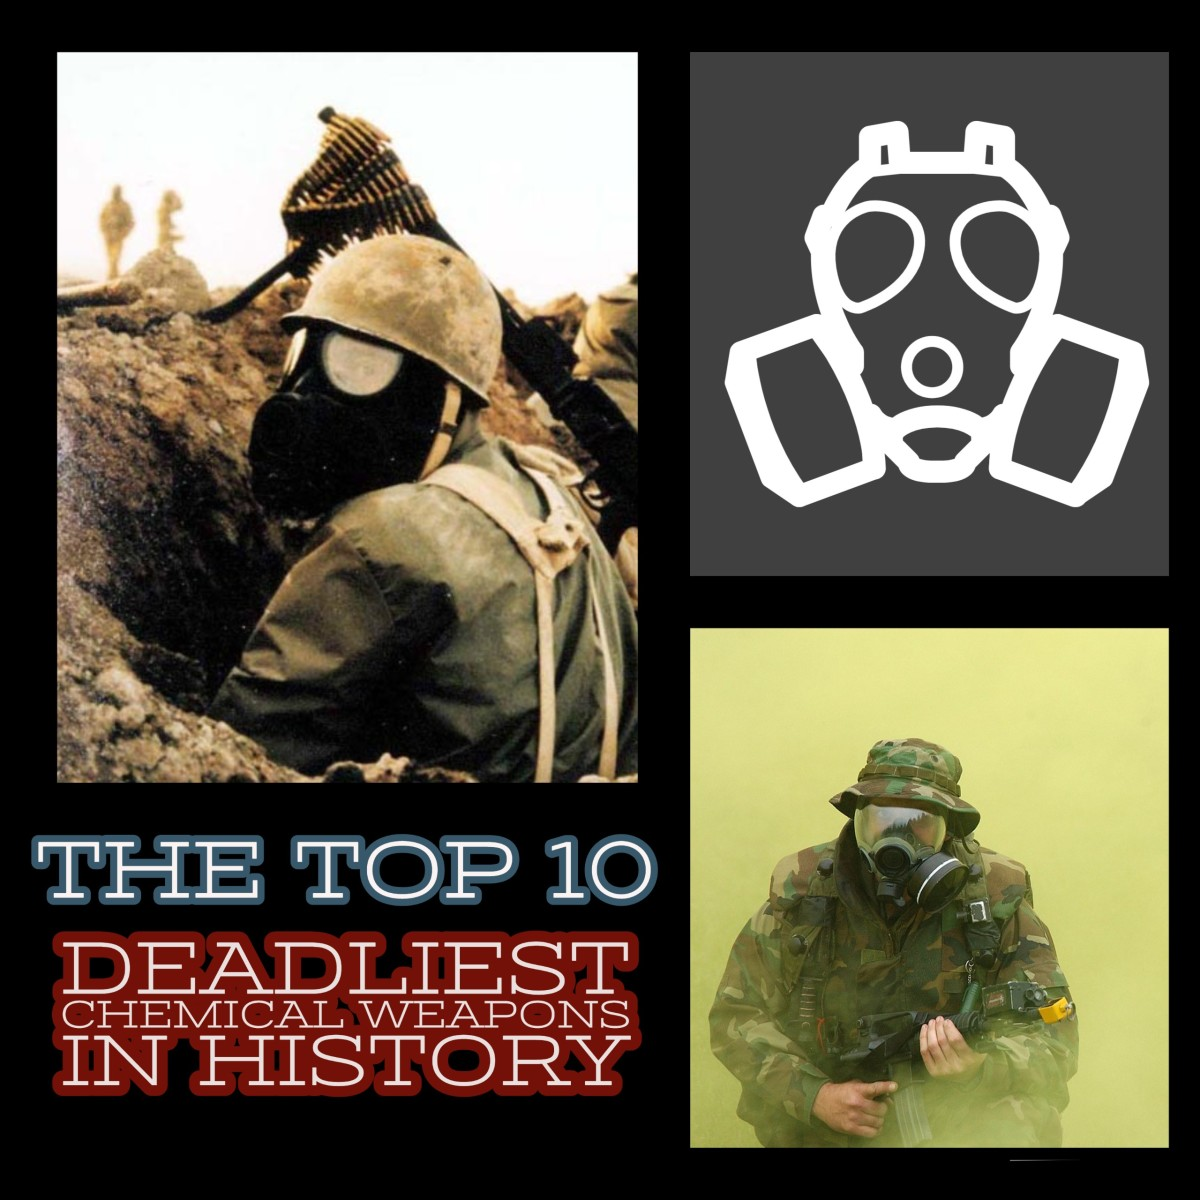 The Top 10 Deadliest Chemical Weapons in History